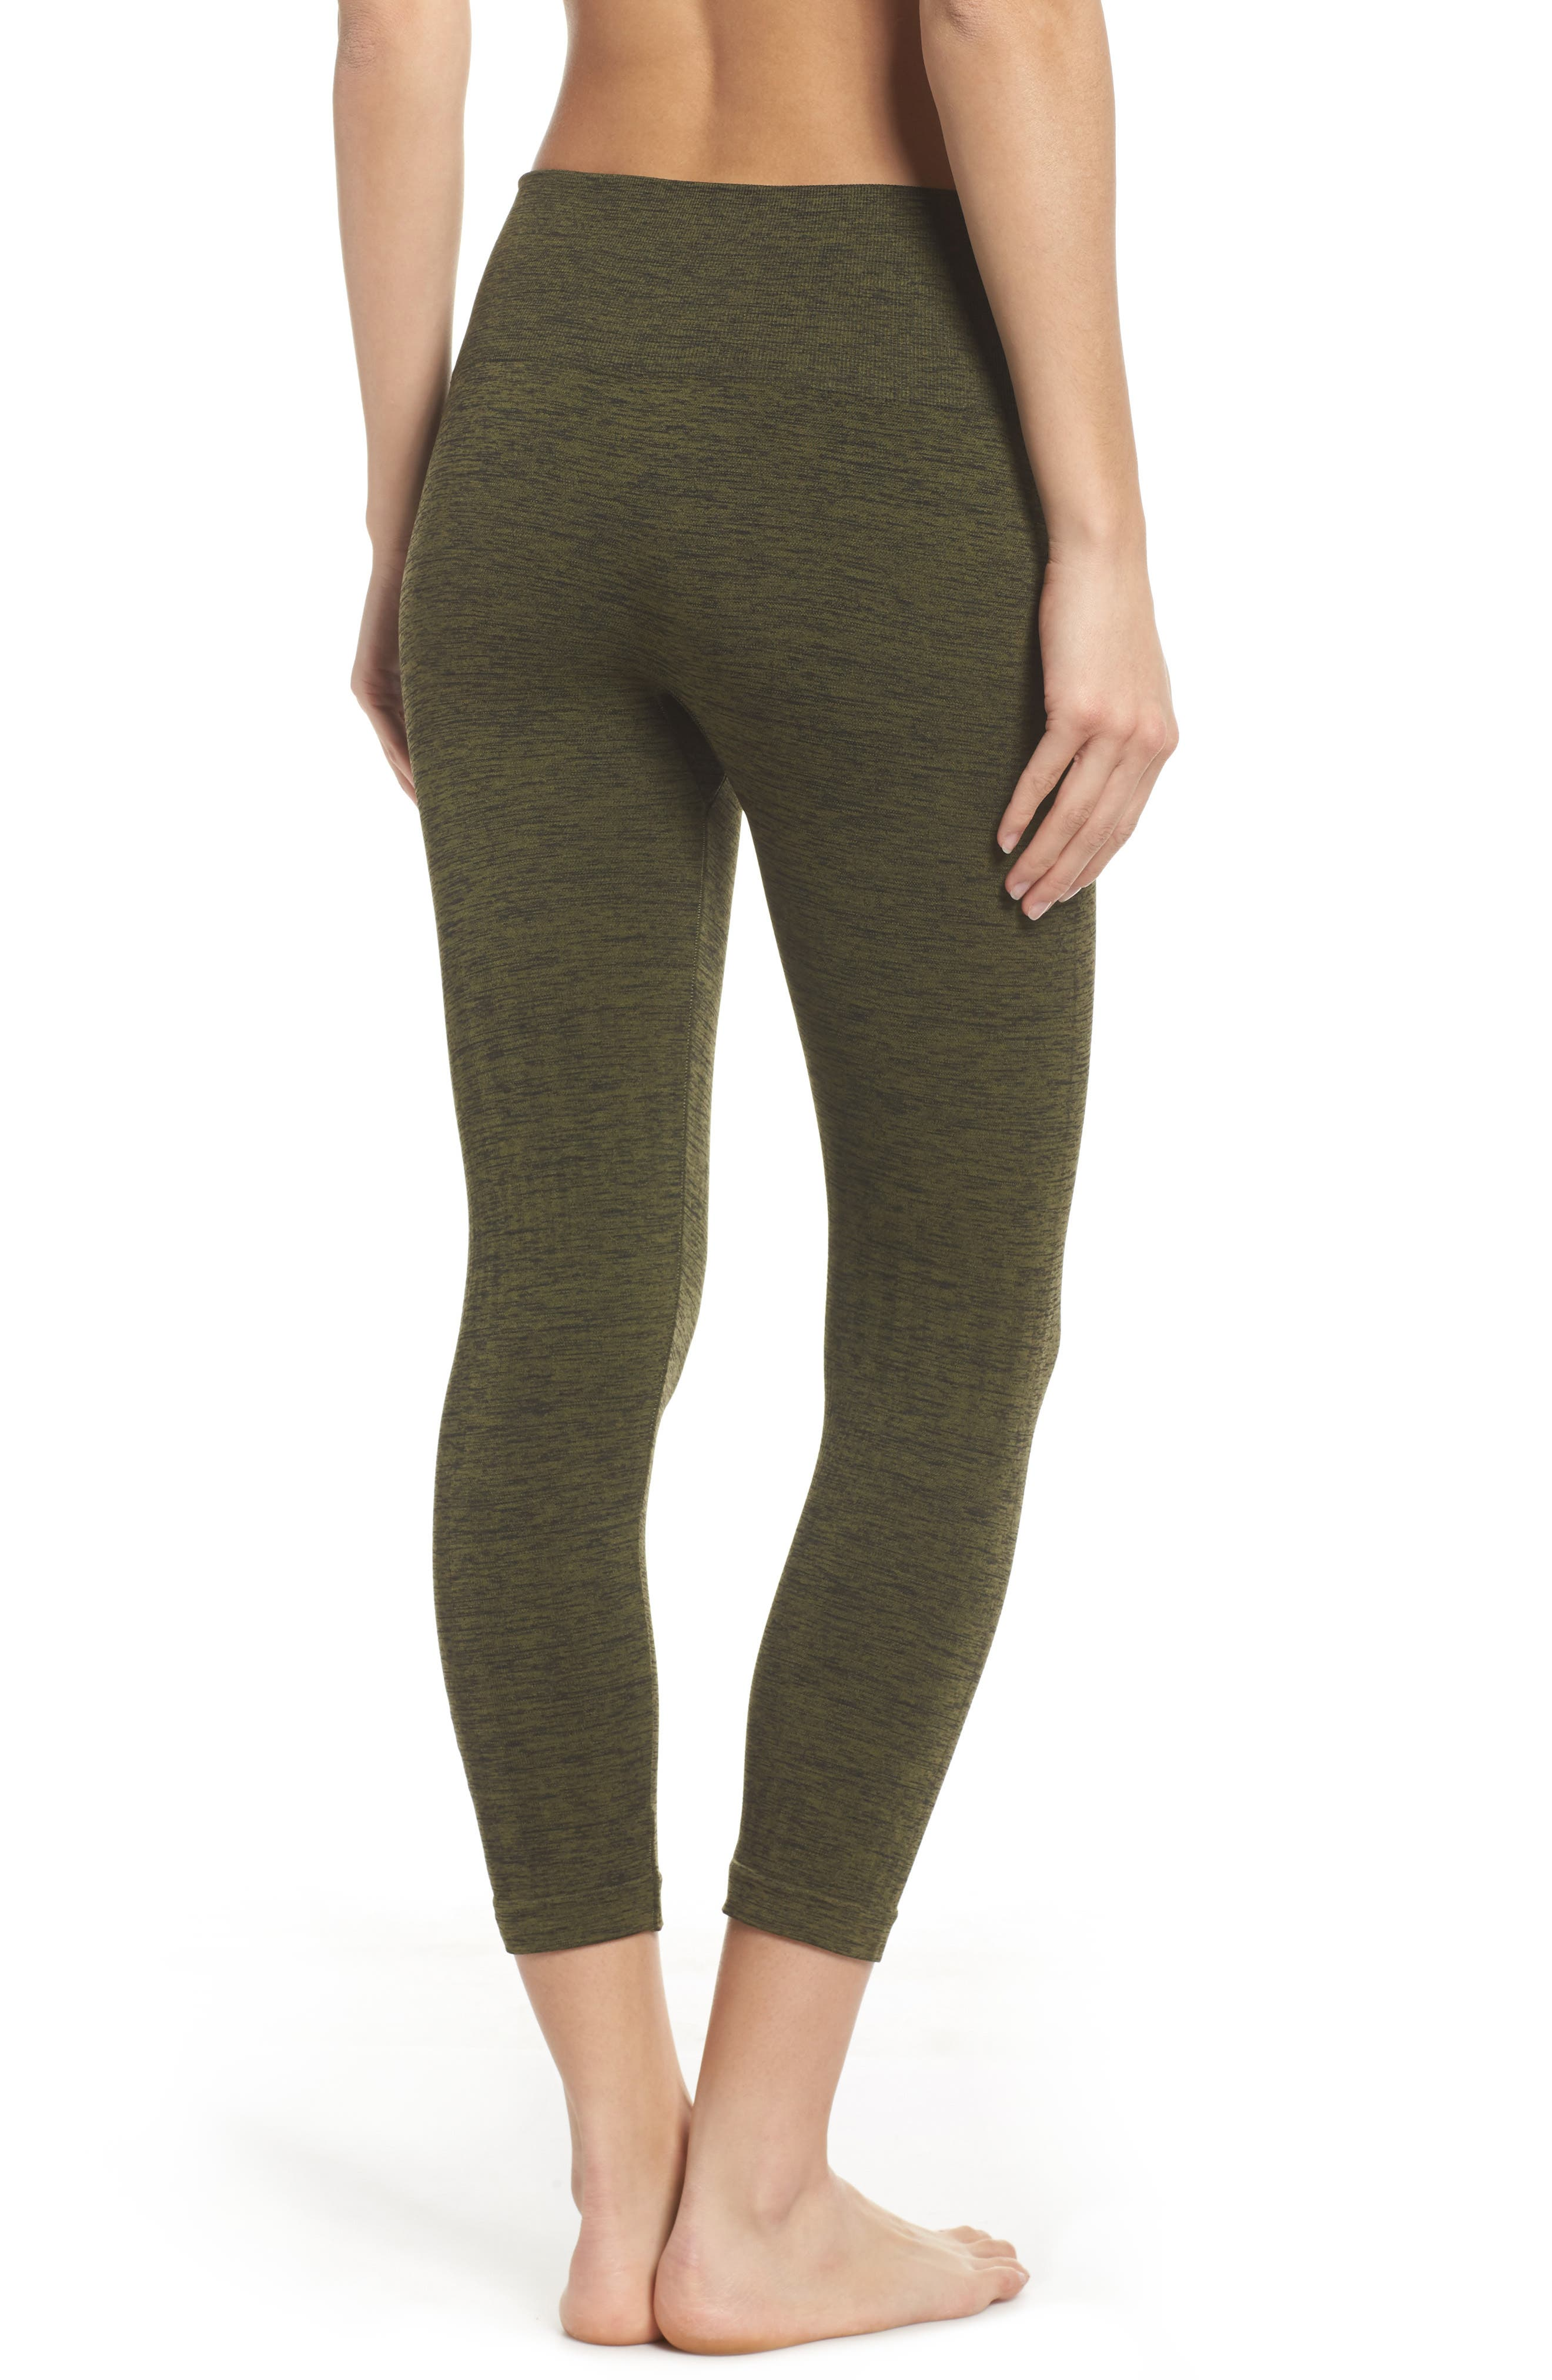 Stamina Capri Leggings,                             Alternate thumbnail 2, color,                             300